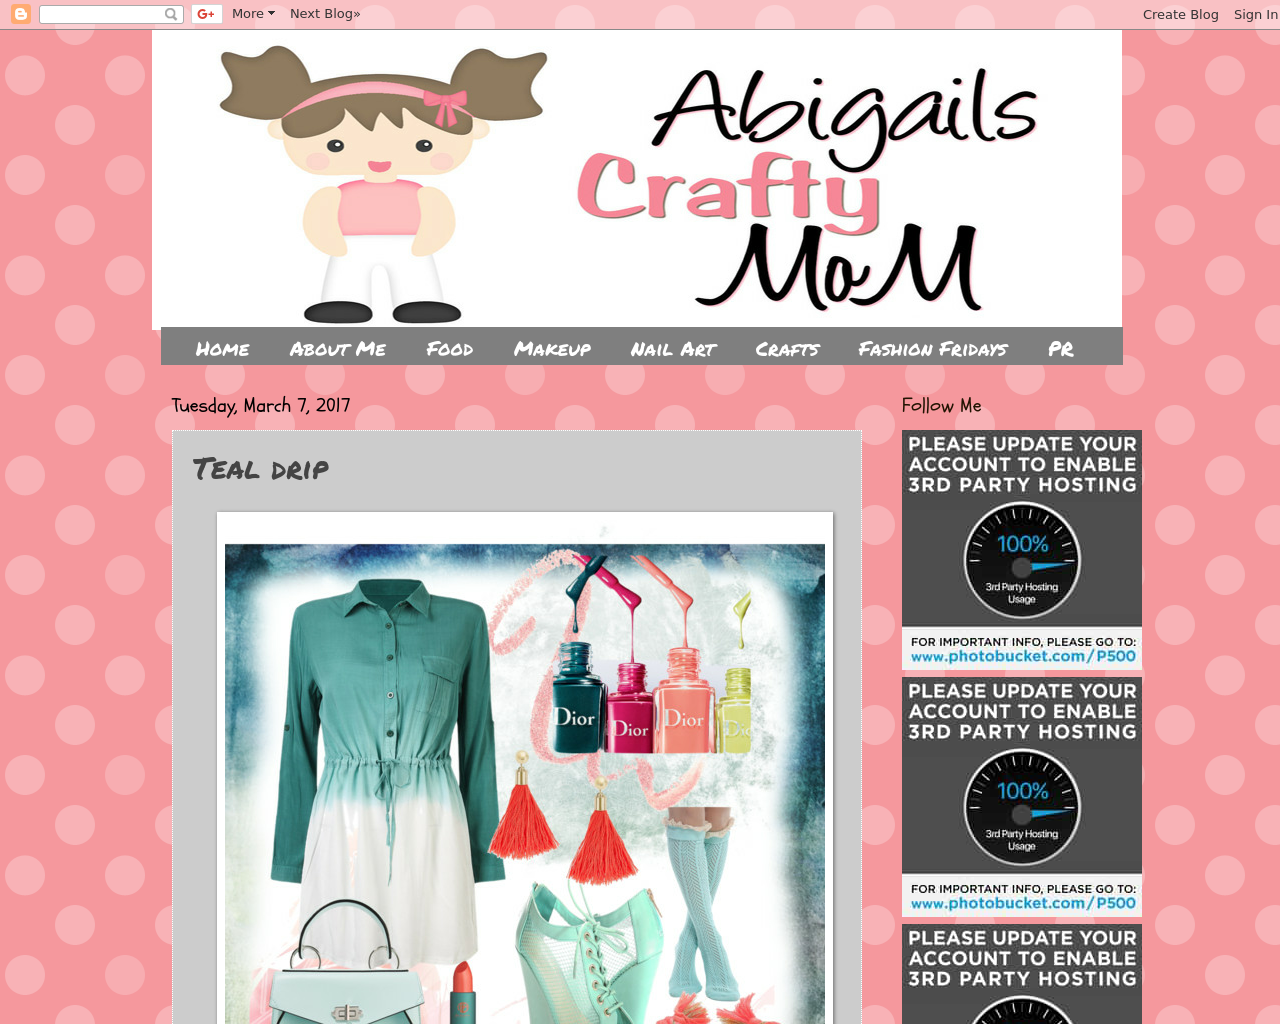 Abigails-Crafty-Mom-Advertising-Reviews-Pricing